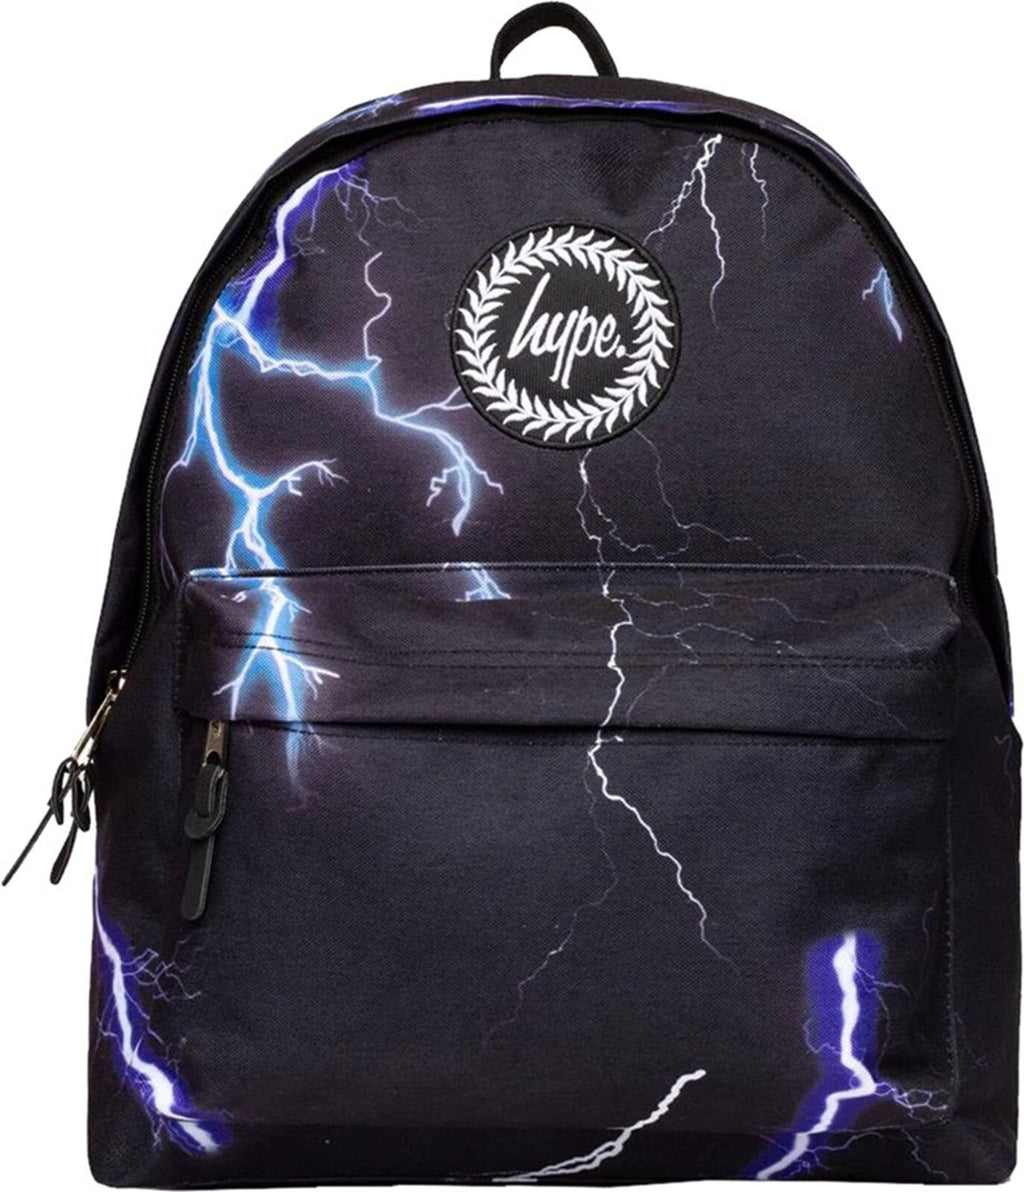 Hype Lightning Backpack Bag Black